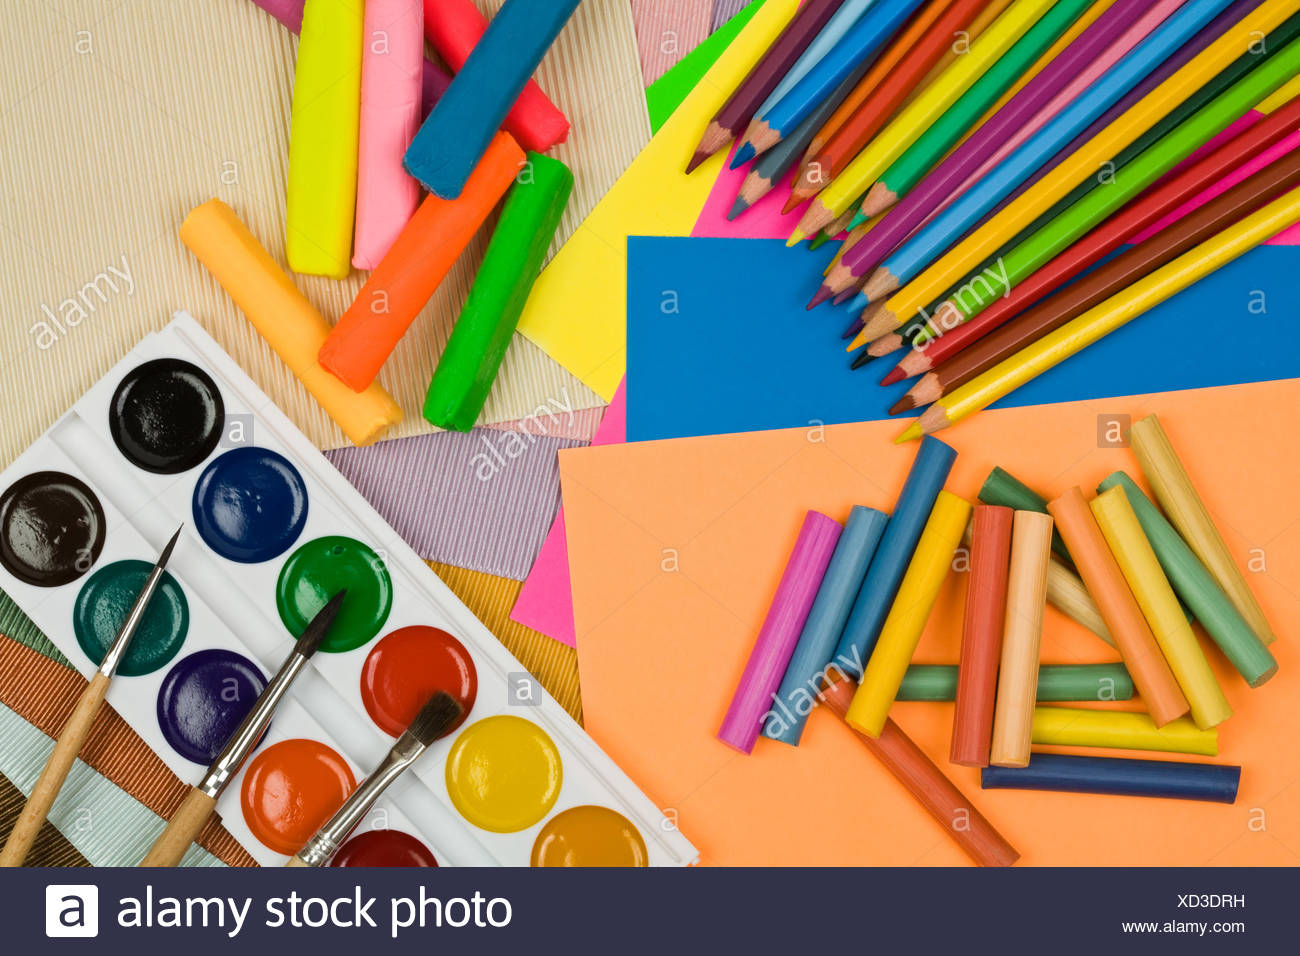 All for creativity of children - Stock Image